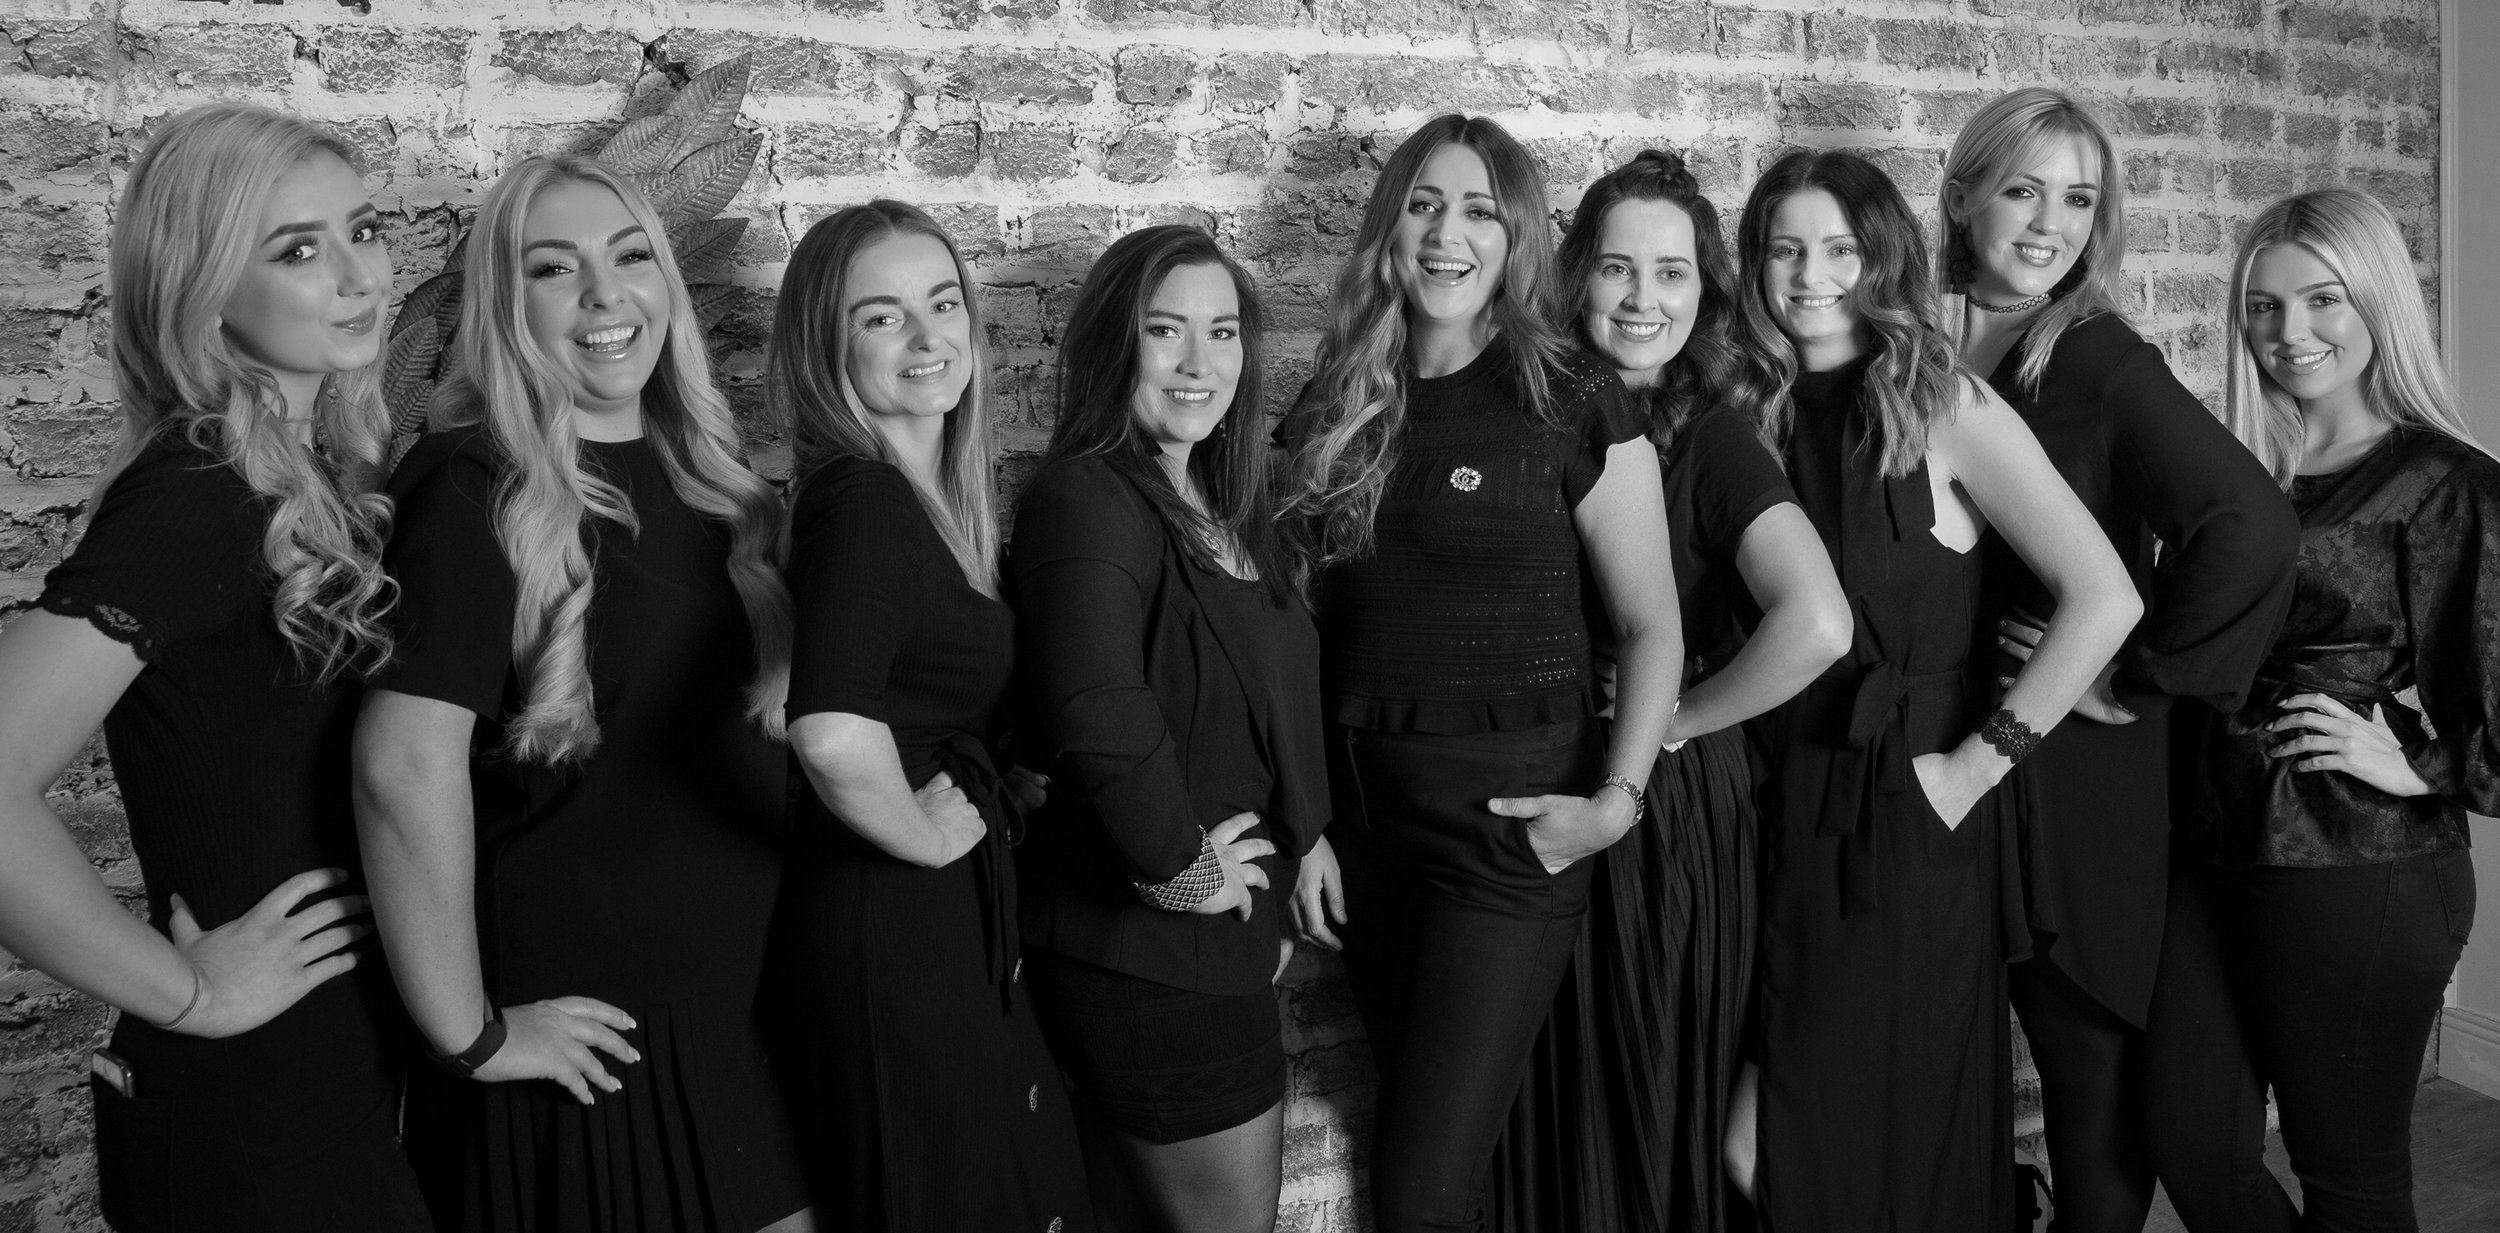 L-R.   Amy  (our lash queen),  Natasha  ( colourist, extensionist and hair obsessed),  Donna  (boho blowdry boss),  Laura  (styling supremo, instapro & in-house cocktail expert!),  Danielle  (Dublin's curly blowdry queen),  Sinead  (our newest family member and award winning colourist specialising in colour transformation),  Yvonne  (colourist and styling expert),  Courtney  (our beach wave babe), (  missing - because we can never get everyone in the same place!)… Nicole  (colourist, extenionist and hollywood wave PRO),  Stephanie  (upstyle obsessed!)